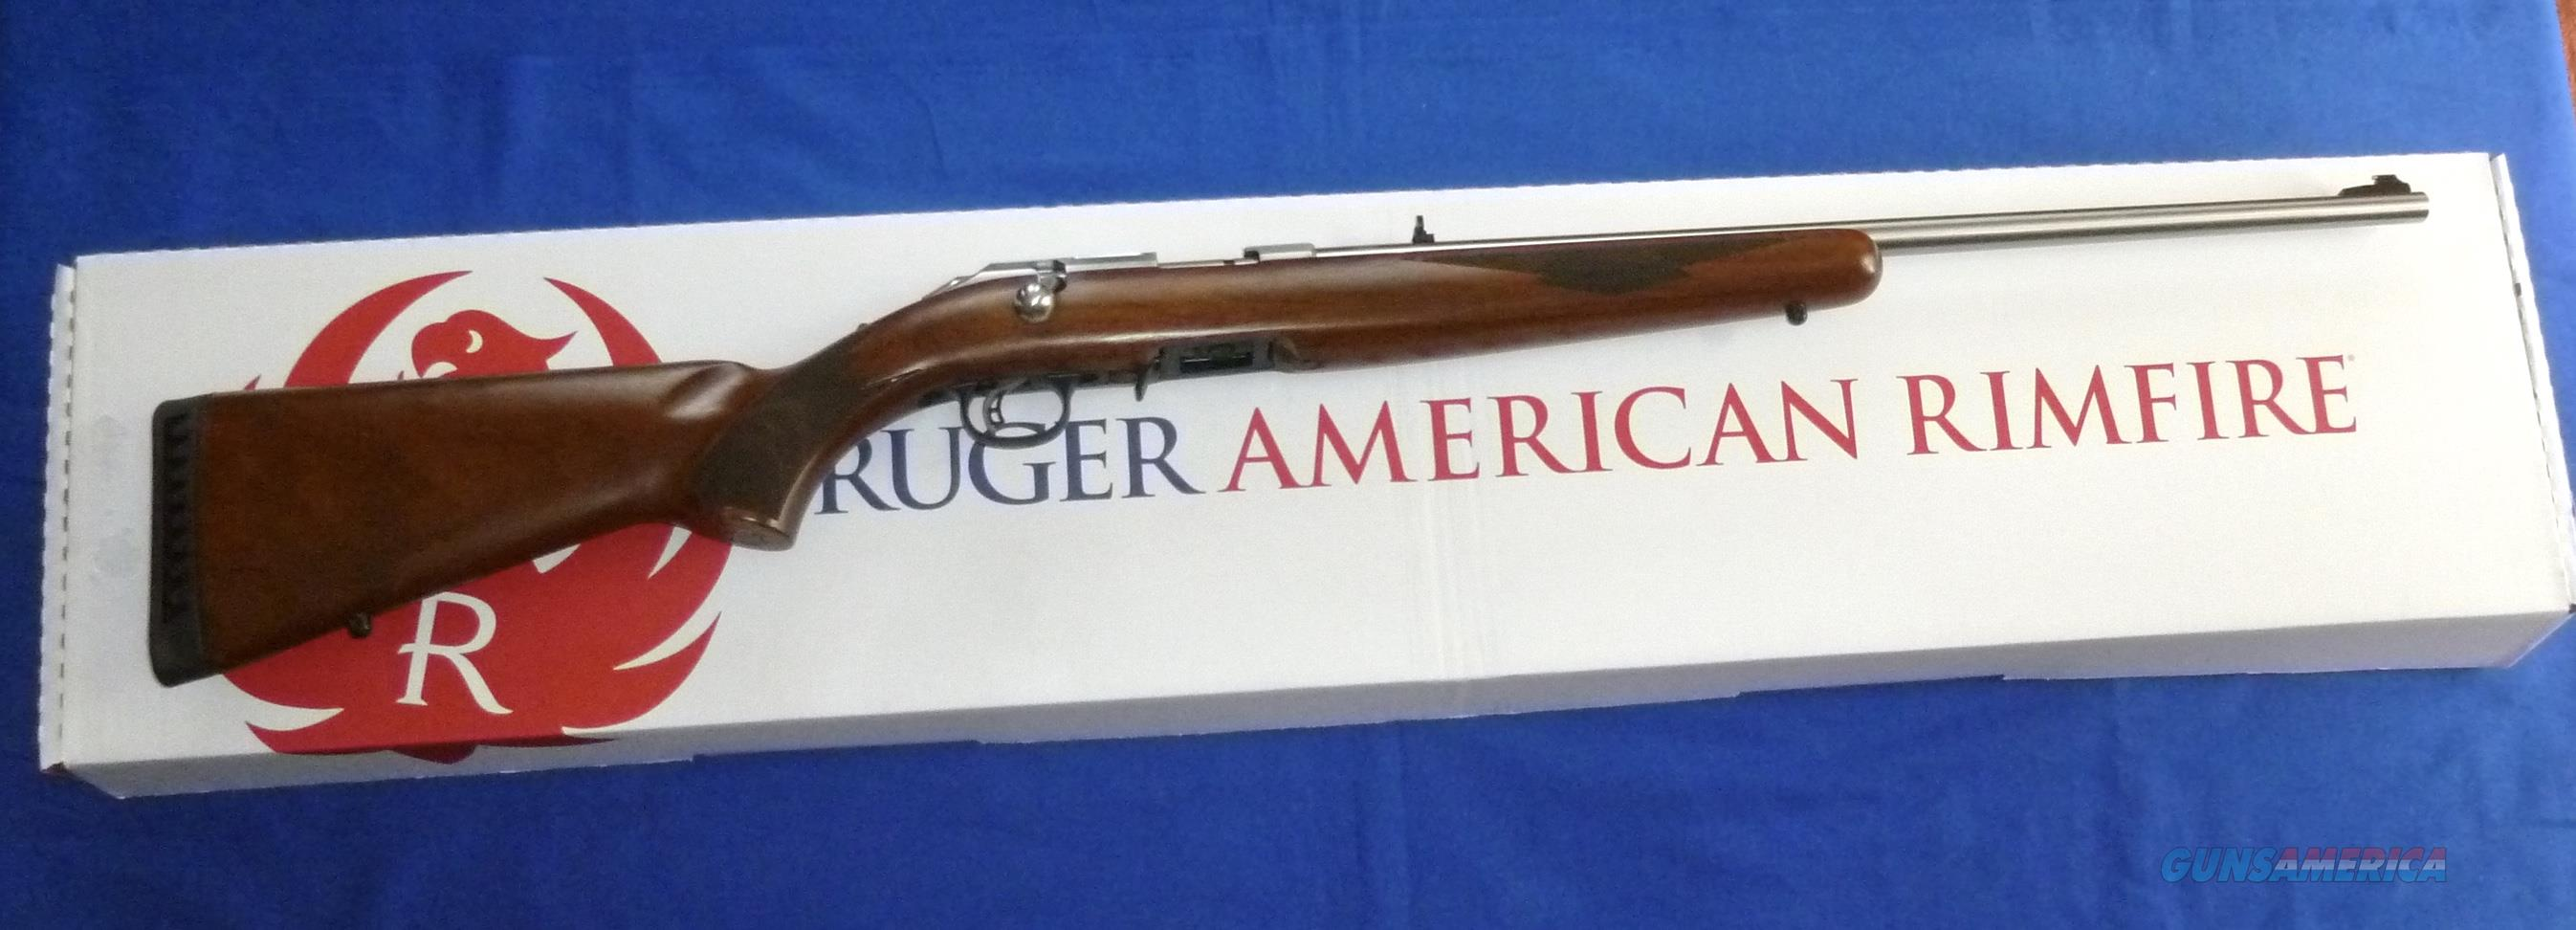 RUGER AMERICAN RIMFIRE STAINLESS STEEL 22 MAGNUM RIFLE BOLT ACTION RIFLE W/WALNUT STOCK  Guns > Rifles > Ruger Rifles > American Rifle